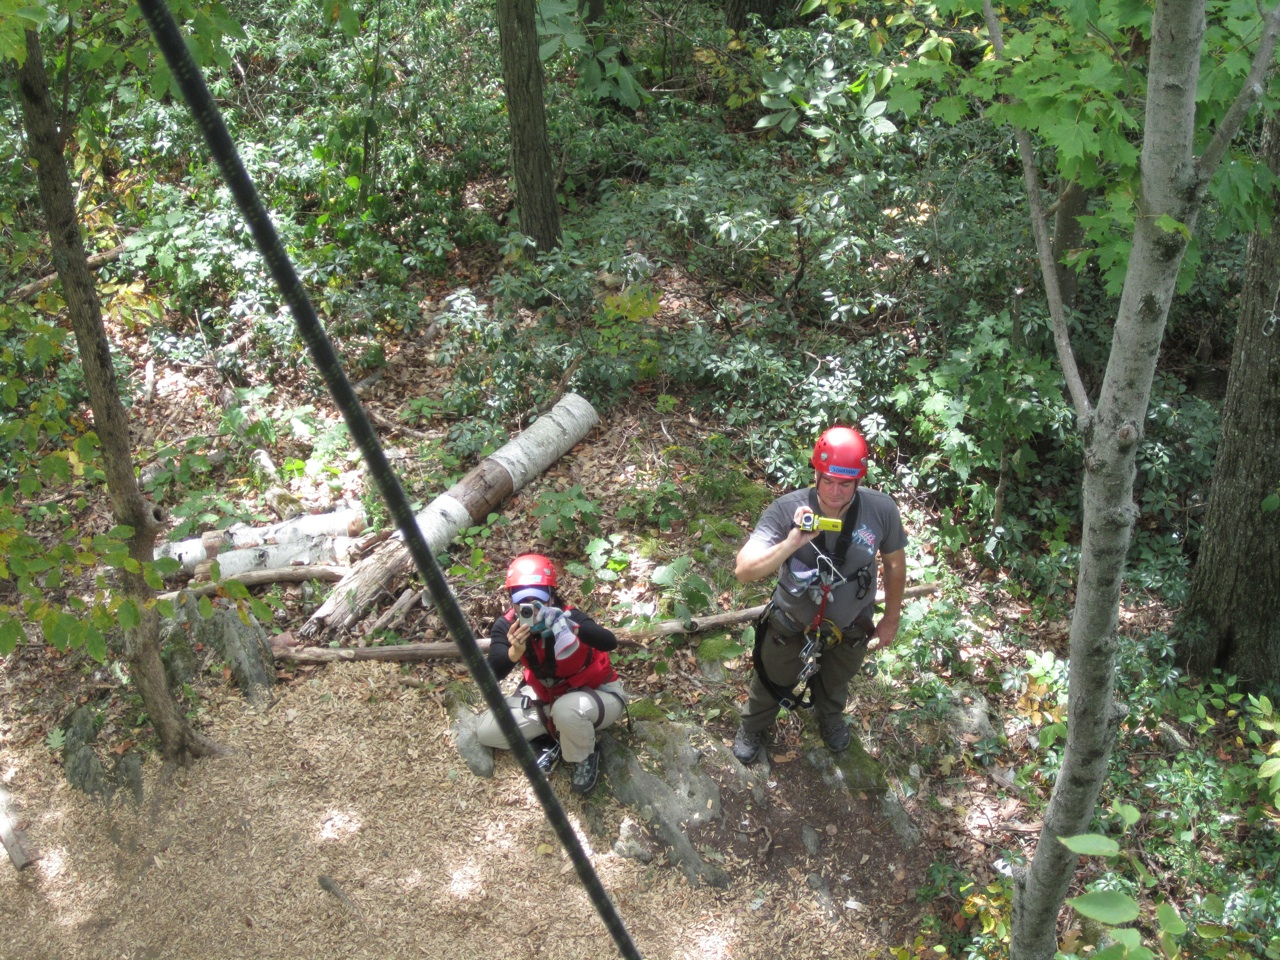 Jonathan & Dasy Shooting Video and Taking Pictures Of Us Rappeling